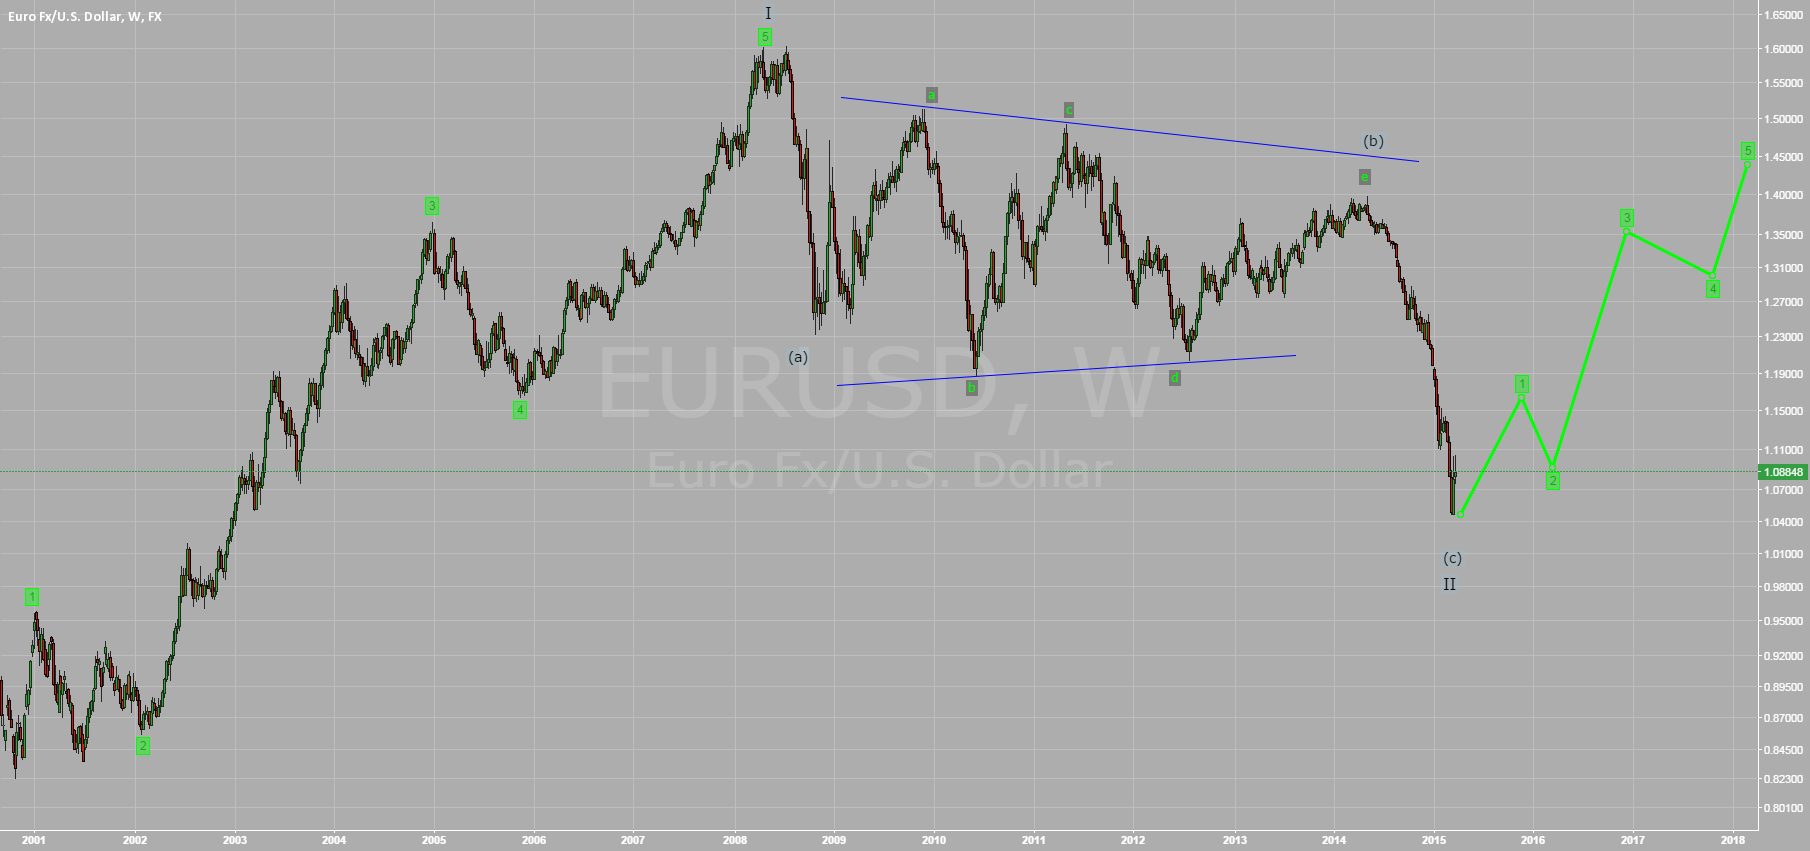 Week3: EURUSD will rise